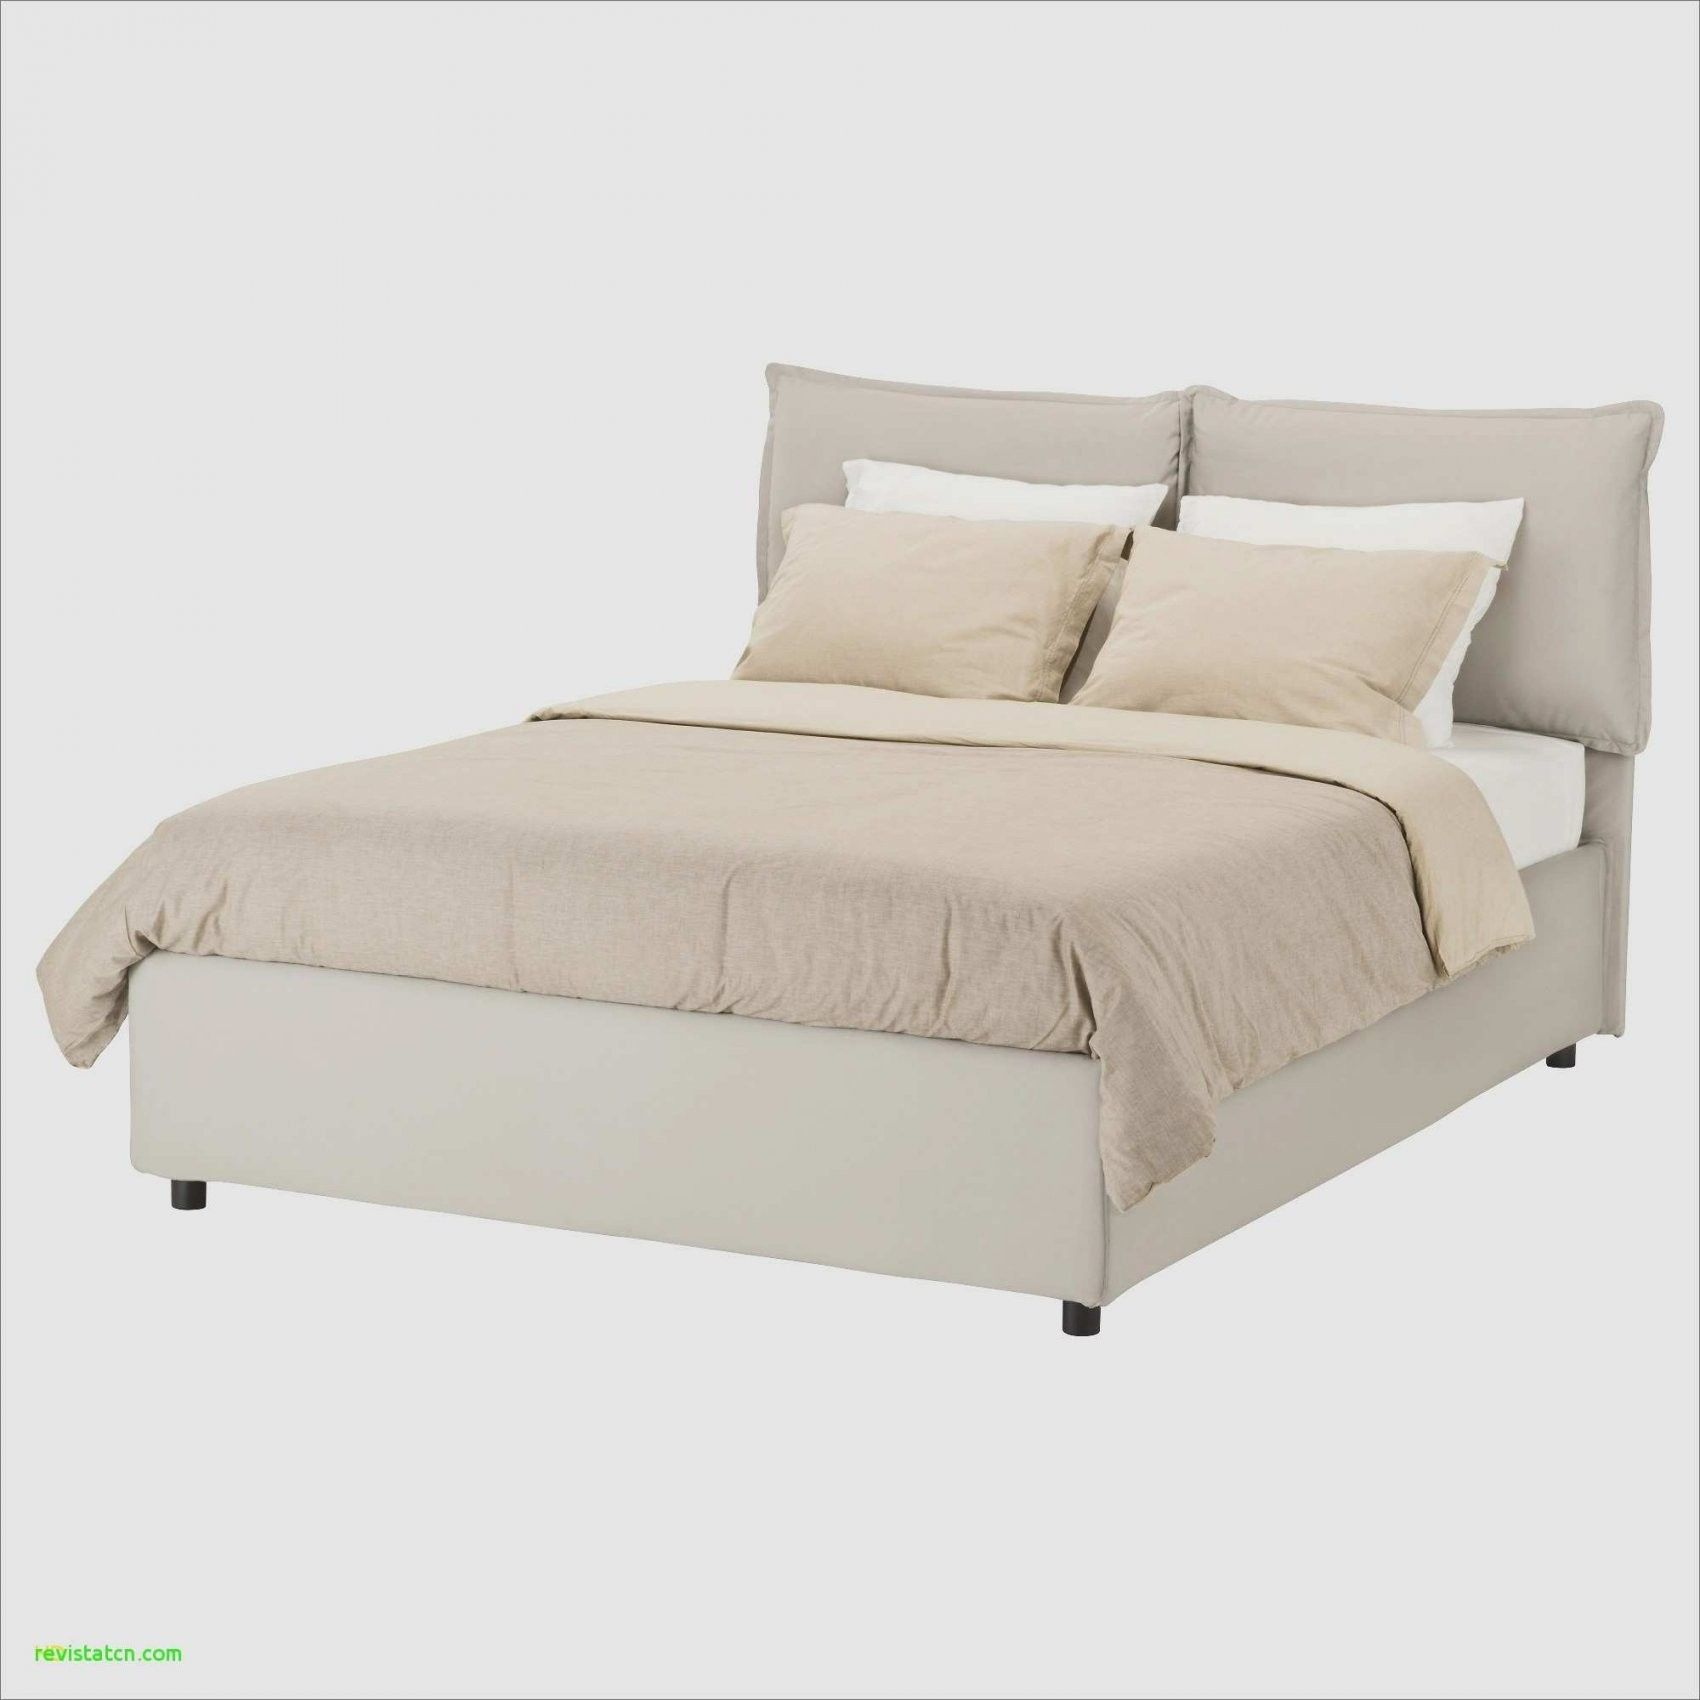 Ikea Malm Bed W Bed Ikea Malm Schlafzimmermalm In 2020 Ikea Malm Bed Malm Bed Sleep Number Mattress